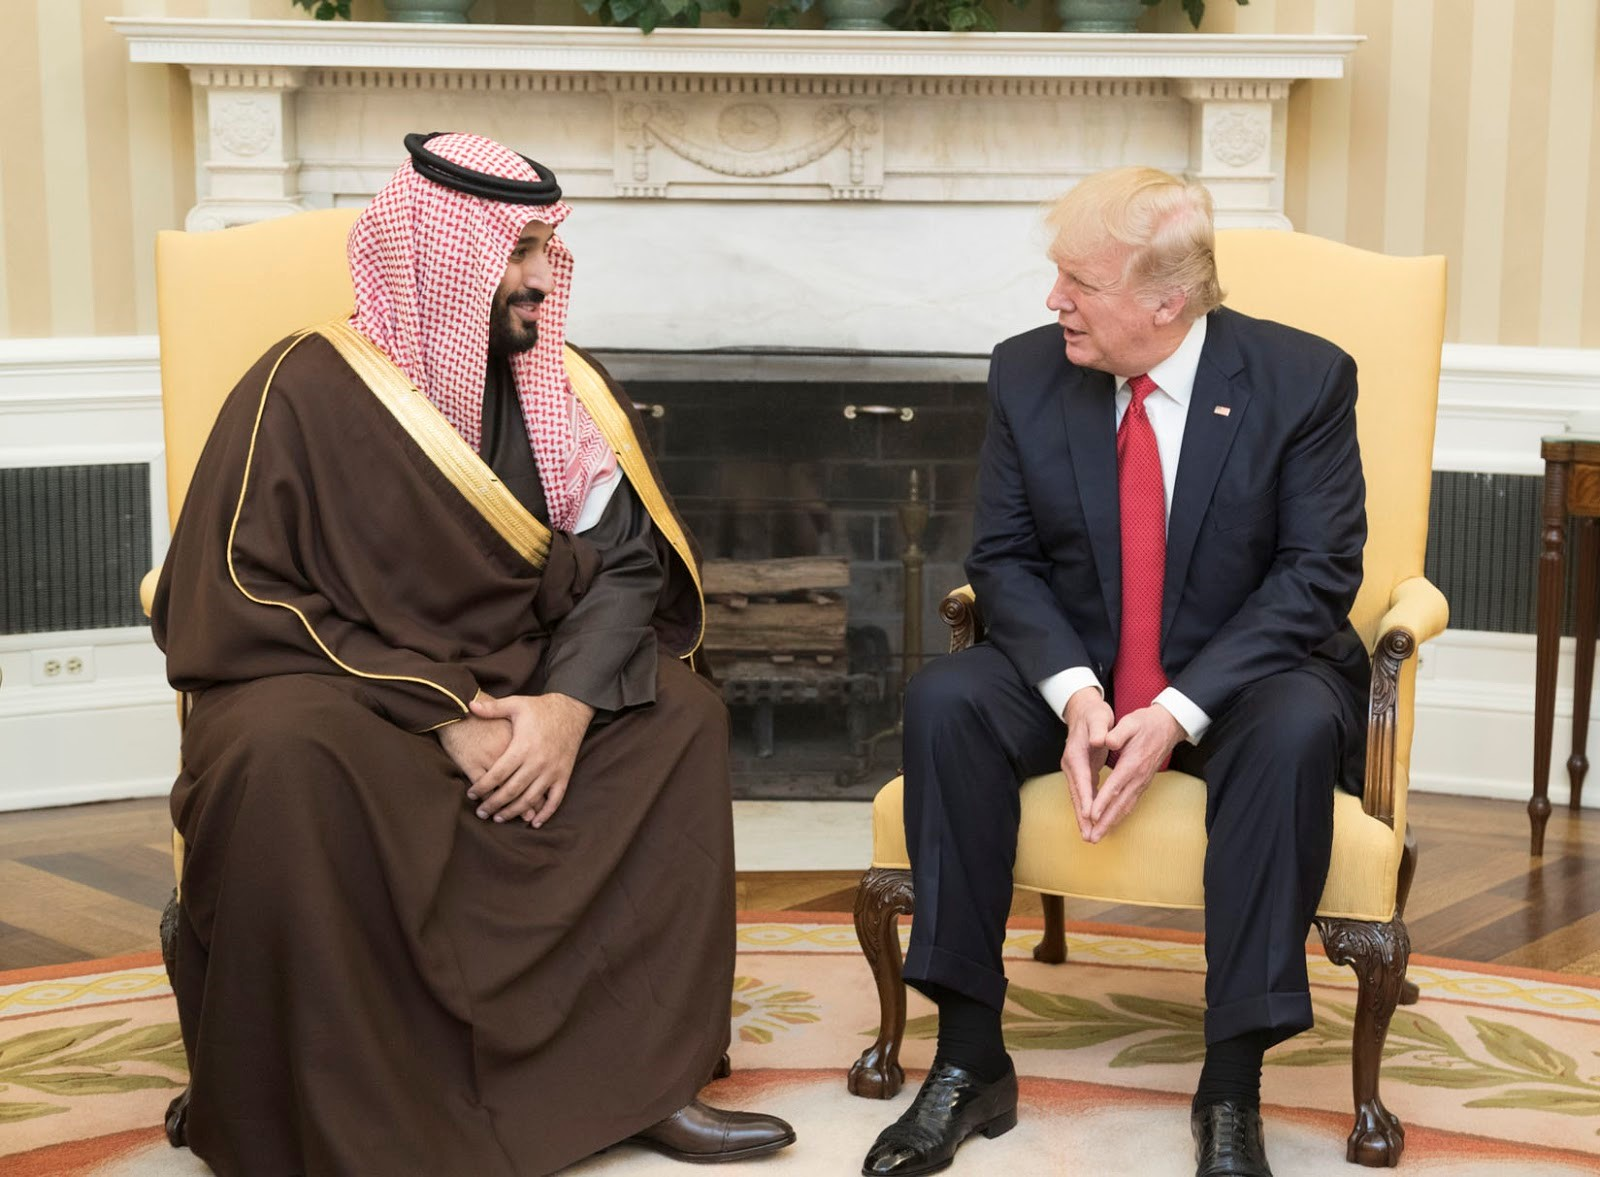 A Year After Jamal Khashoggi's Assassination, The War On Truth Continues